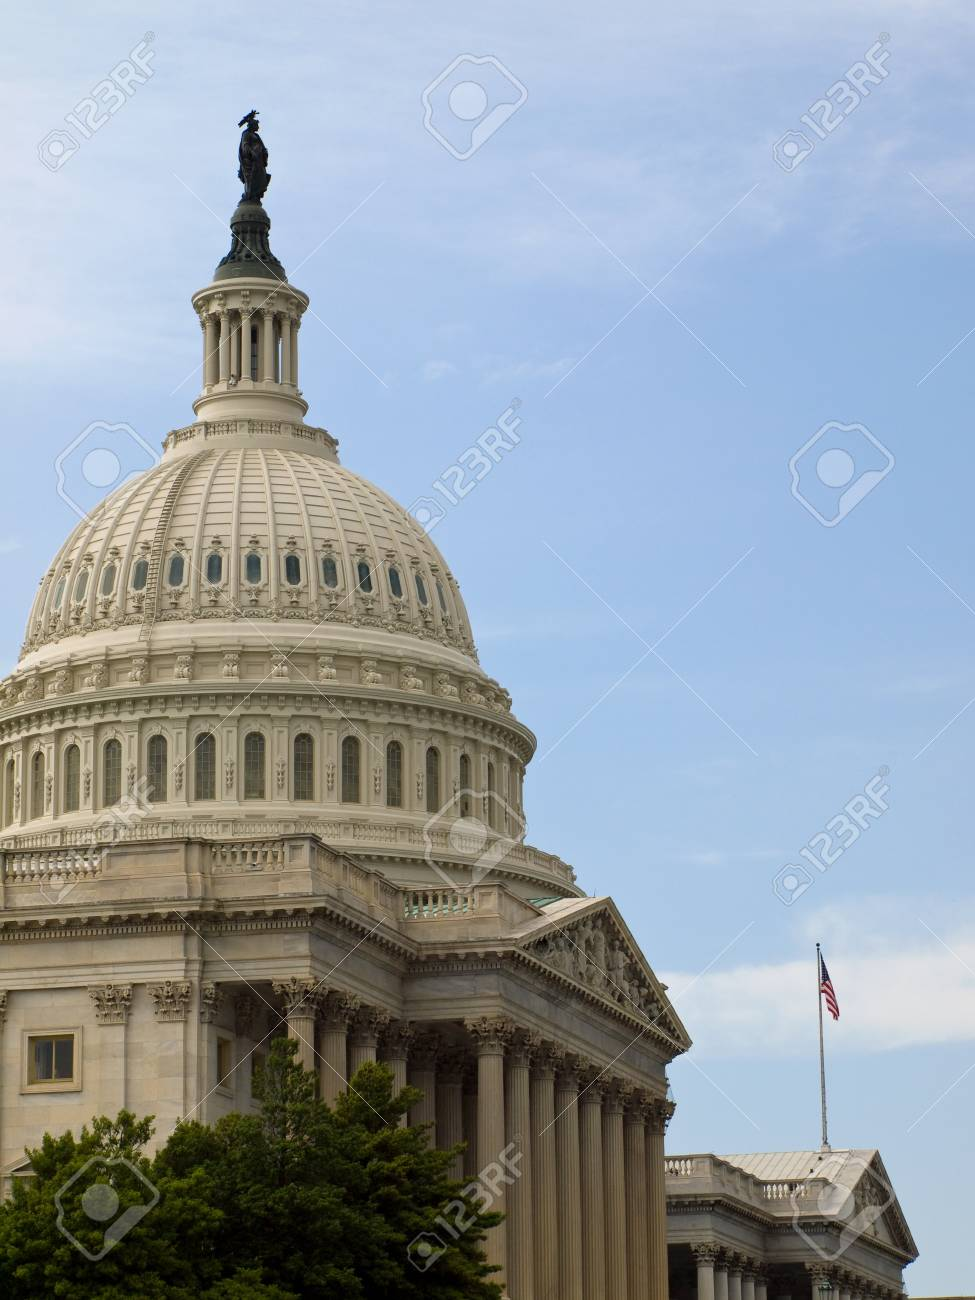 United States Capitol Building in Washington DC with American Flag Stock Photo - 10005814